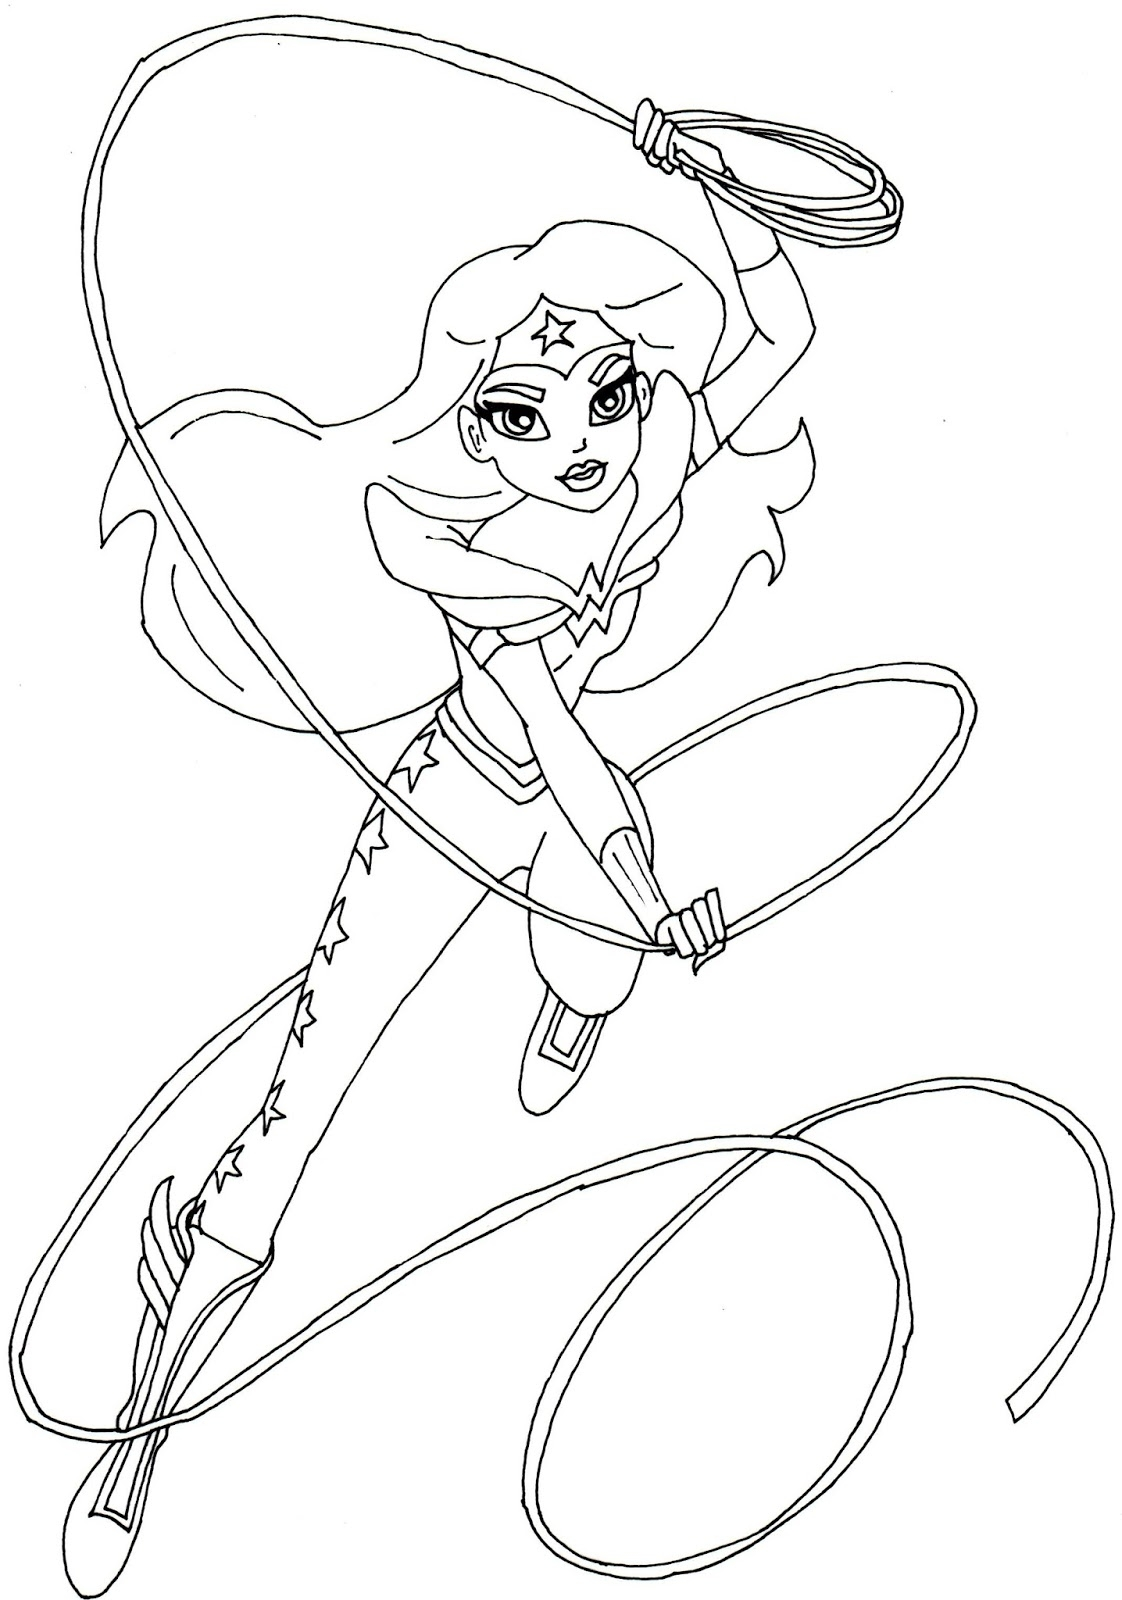 wonder woman coloring pages - wonder woman super hero high coloring 4